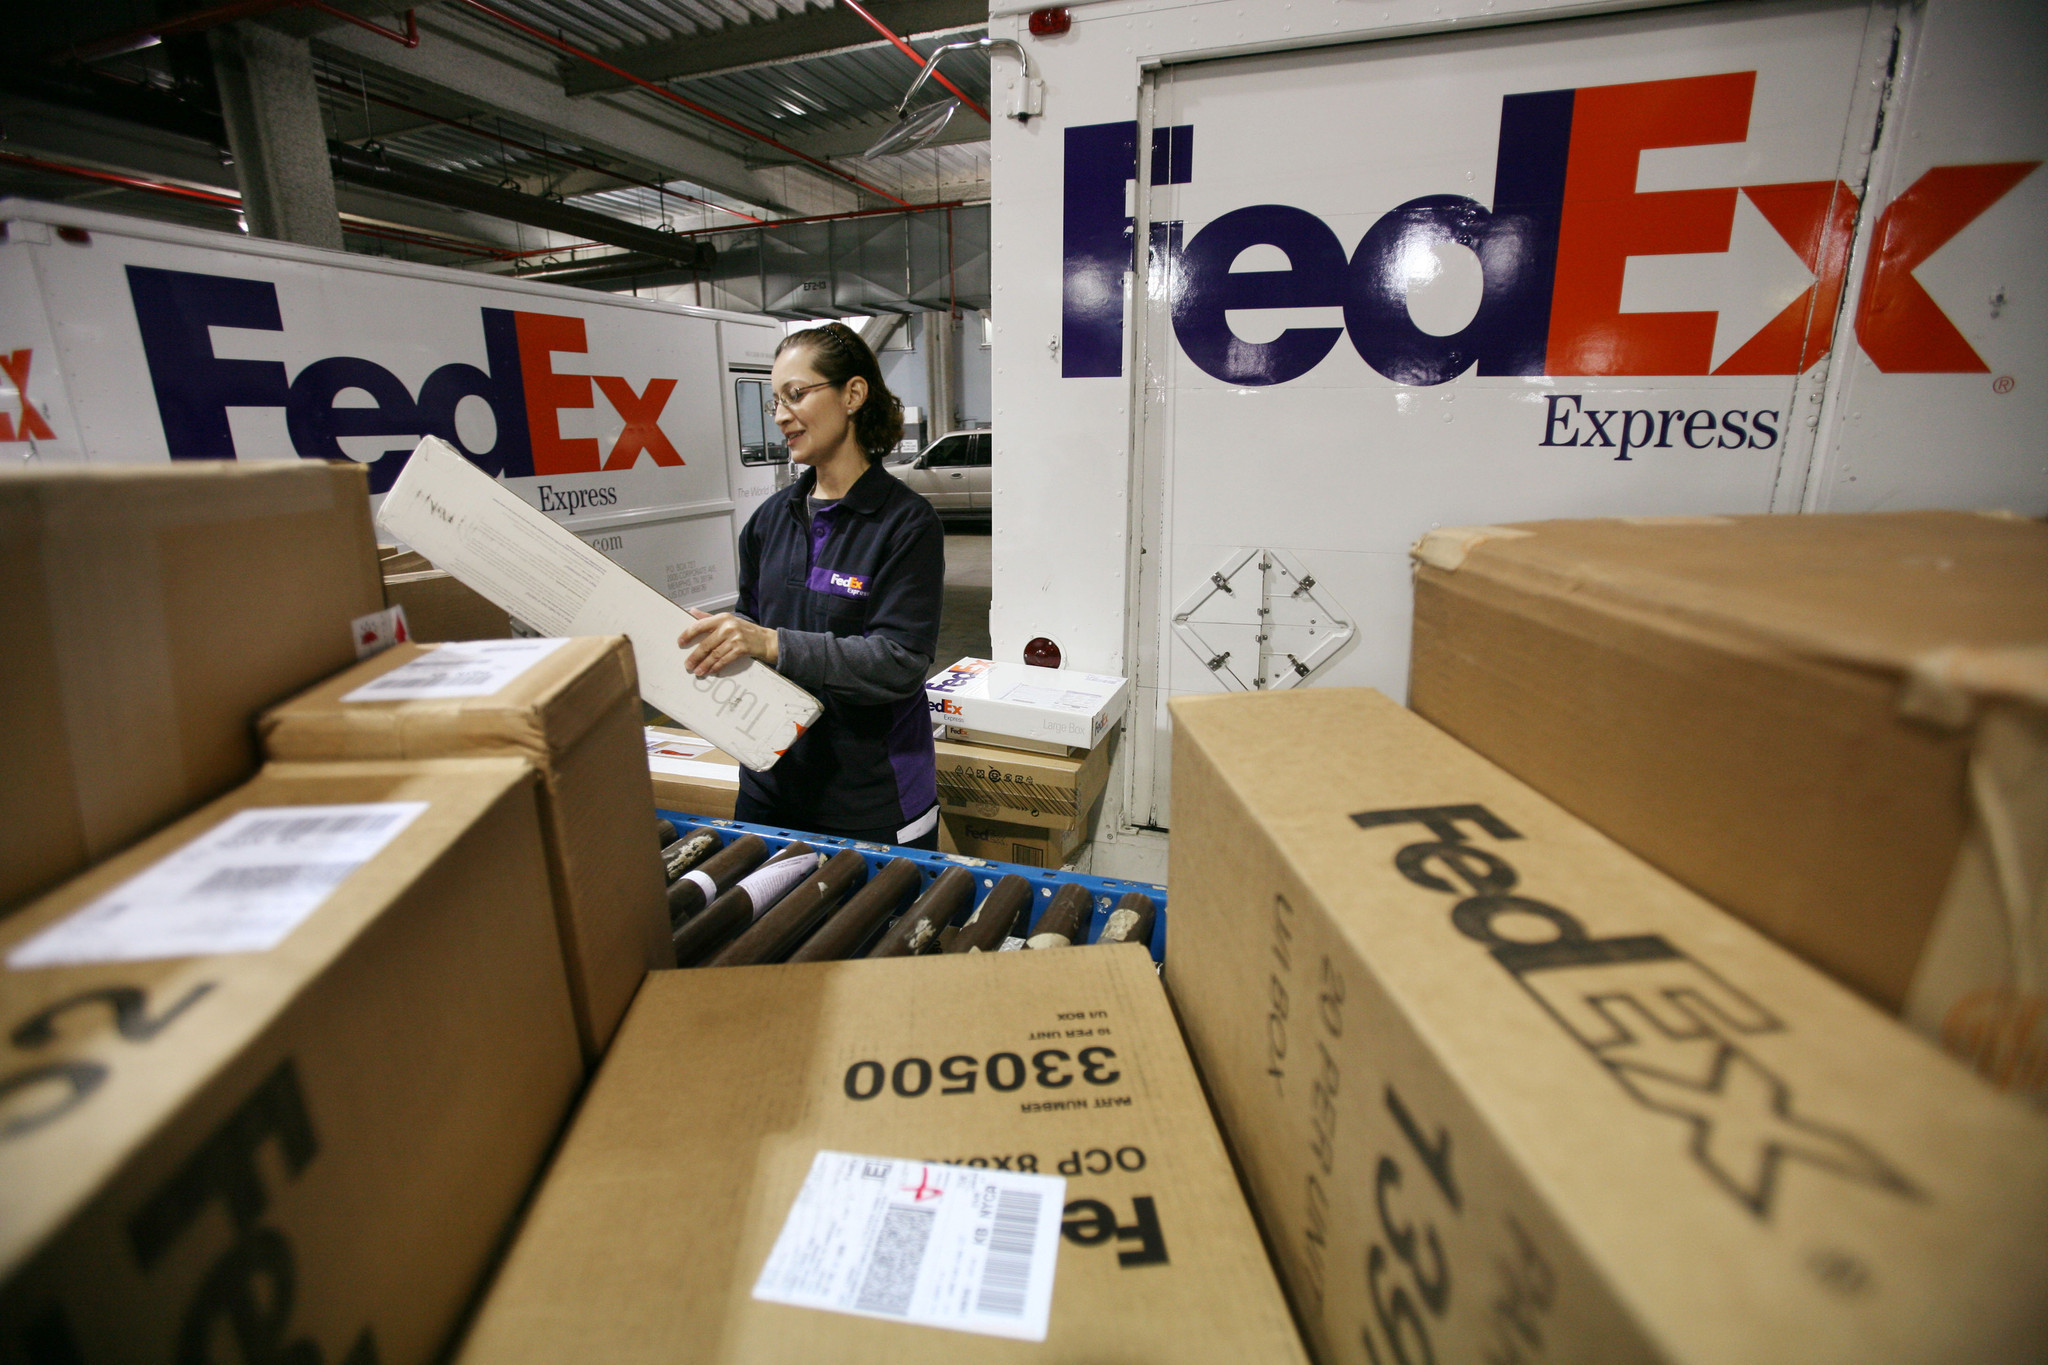 reports on fed ex operations